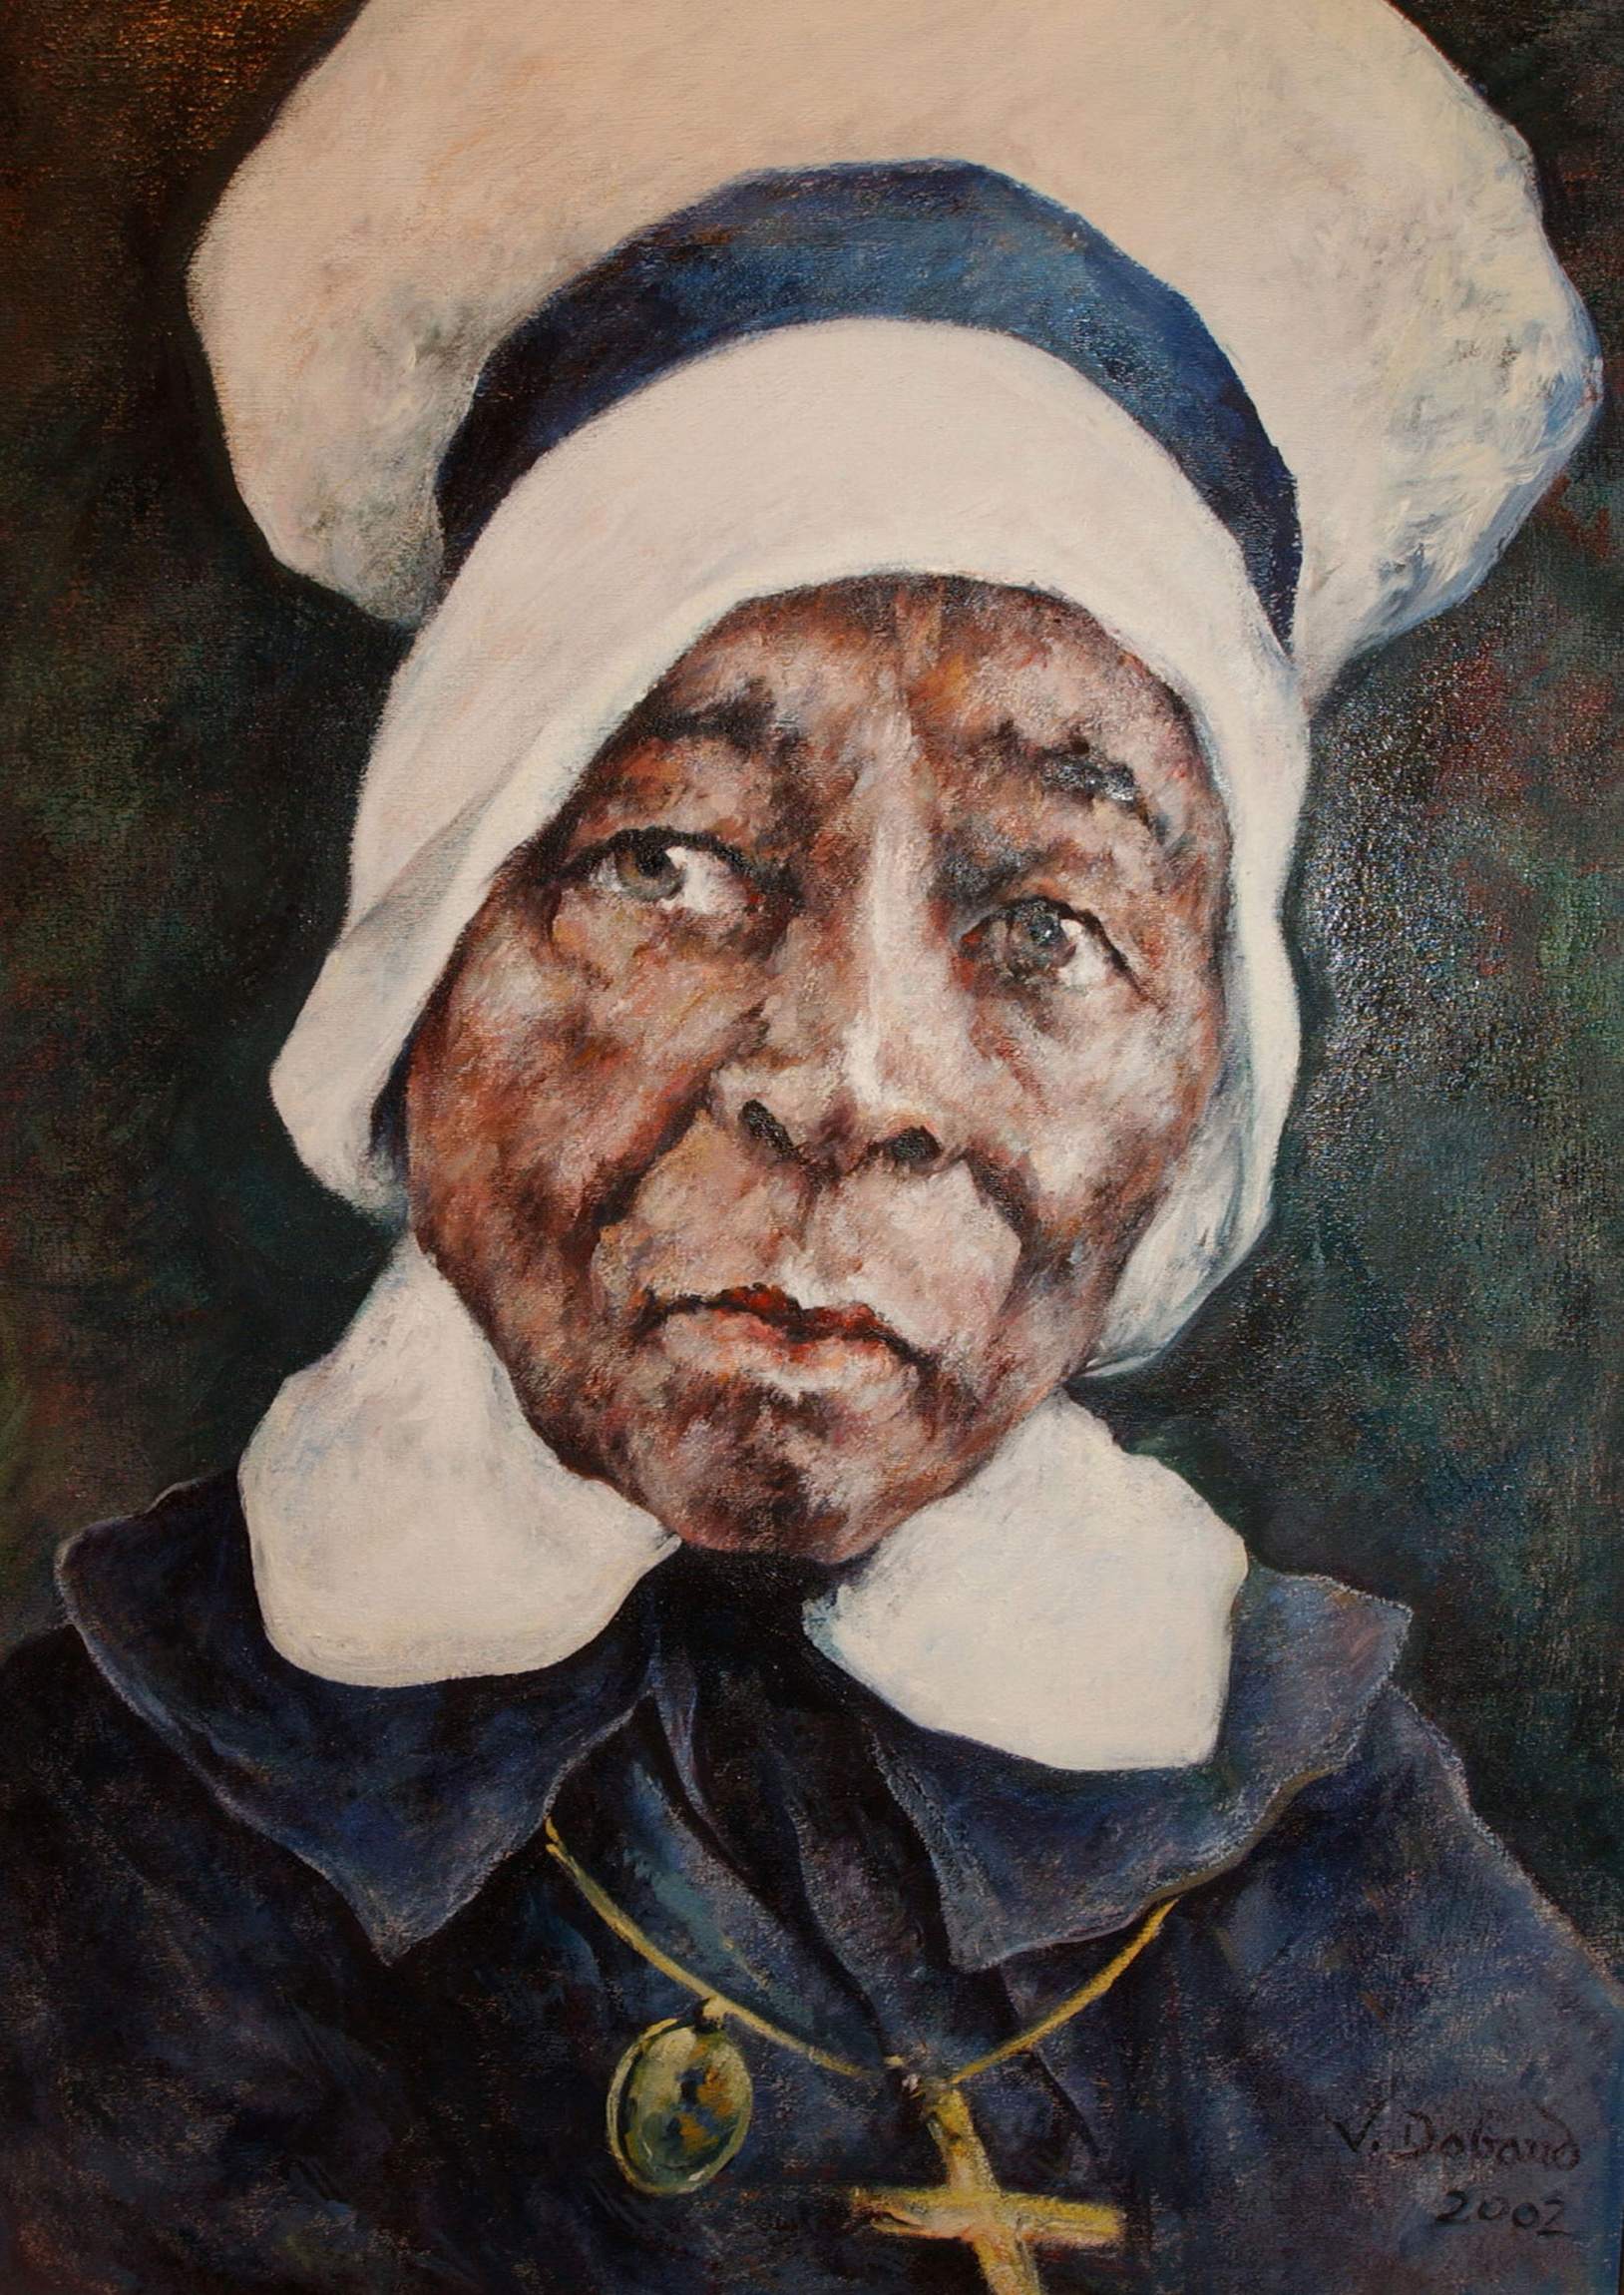 Servant of God Mary Lange: Founded first U.S. order for black sisters